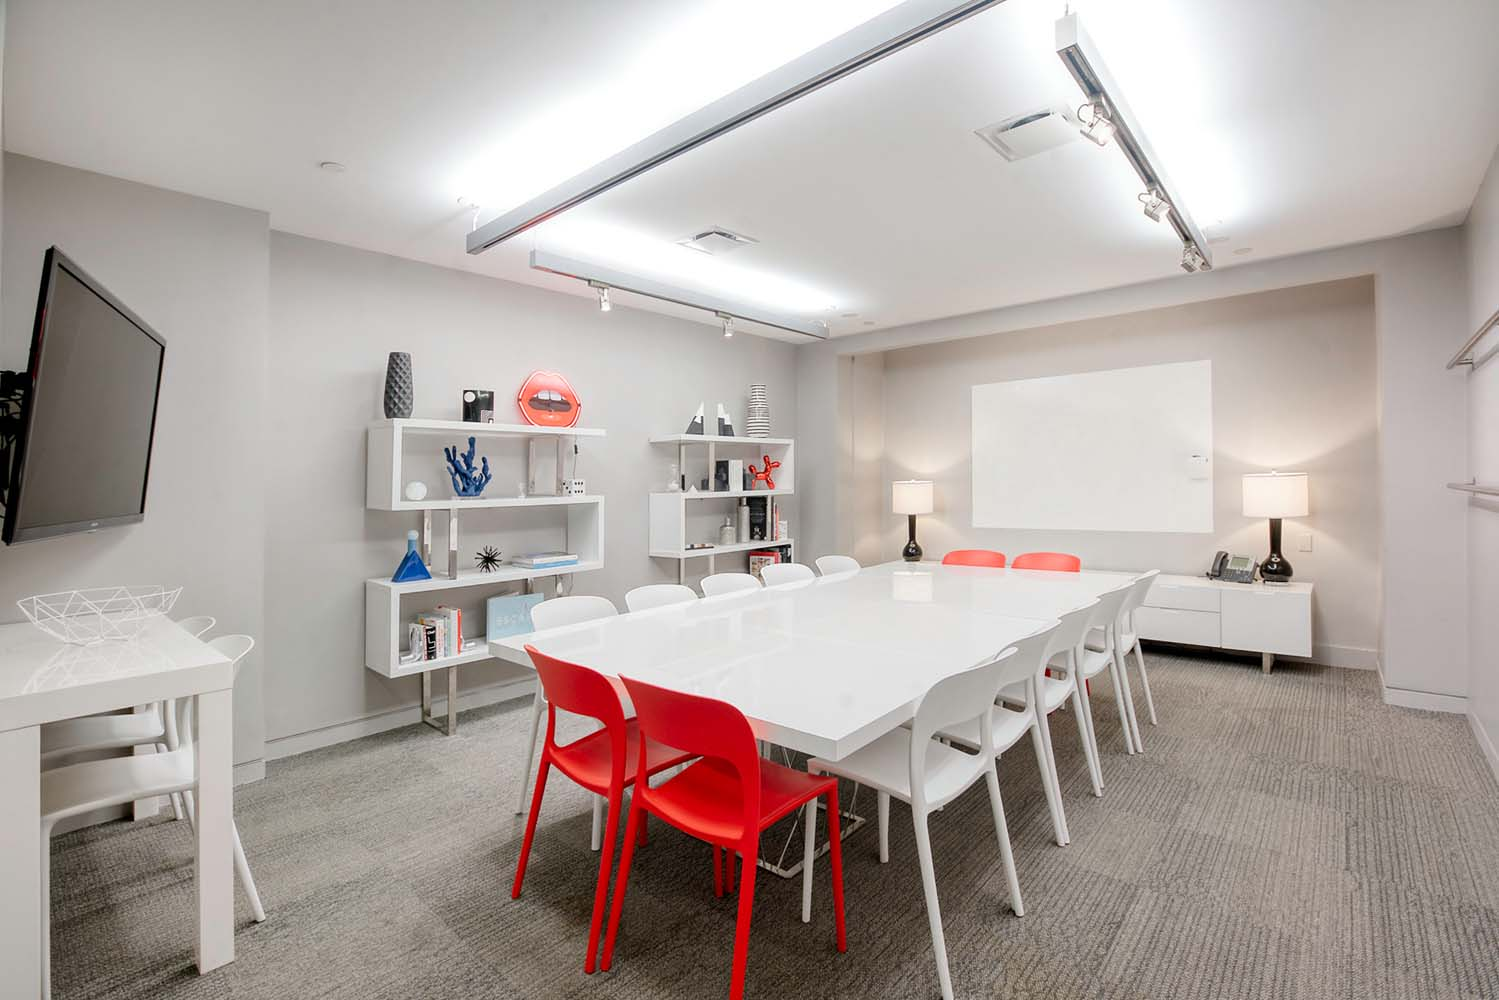 Meeting Rooms - Great for client meetings, team off-sites, Market Week, press previews, interviews, presentations, workshops & more.Rent by the hour, day, or week.